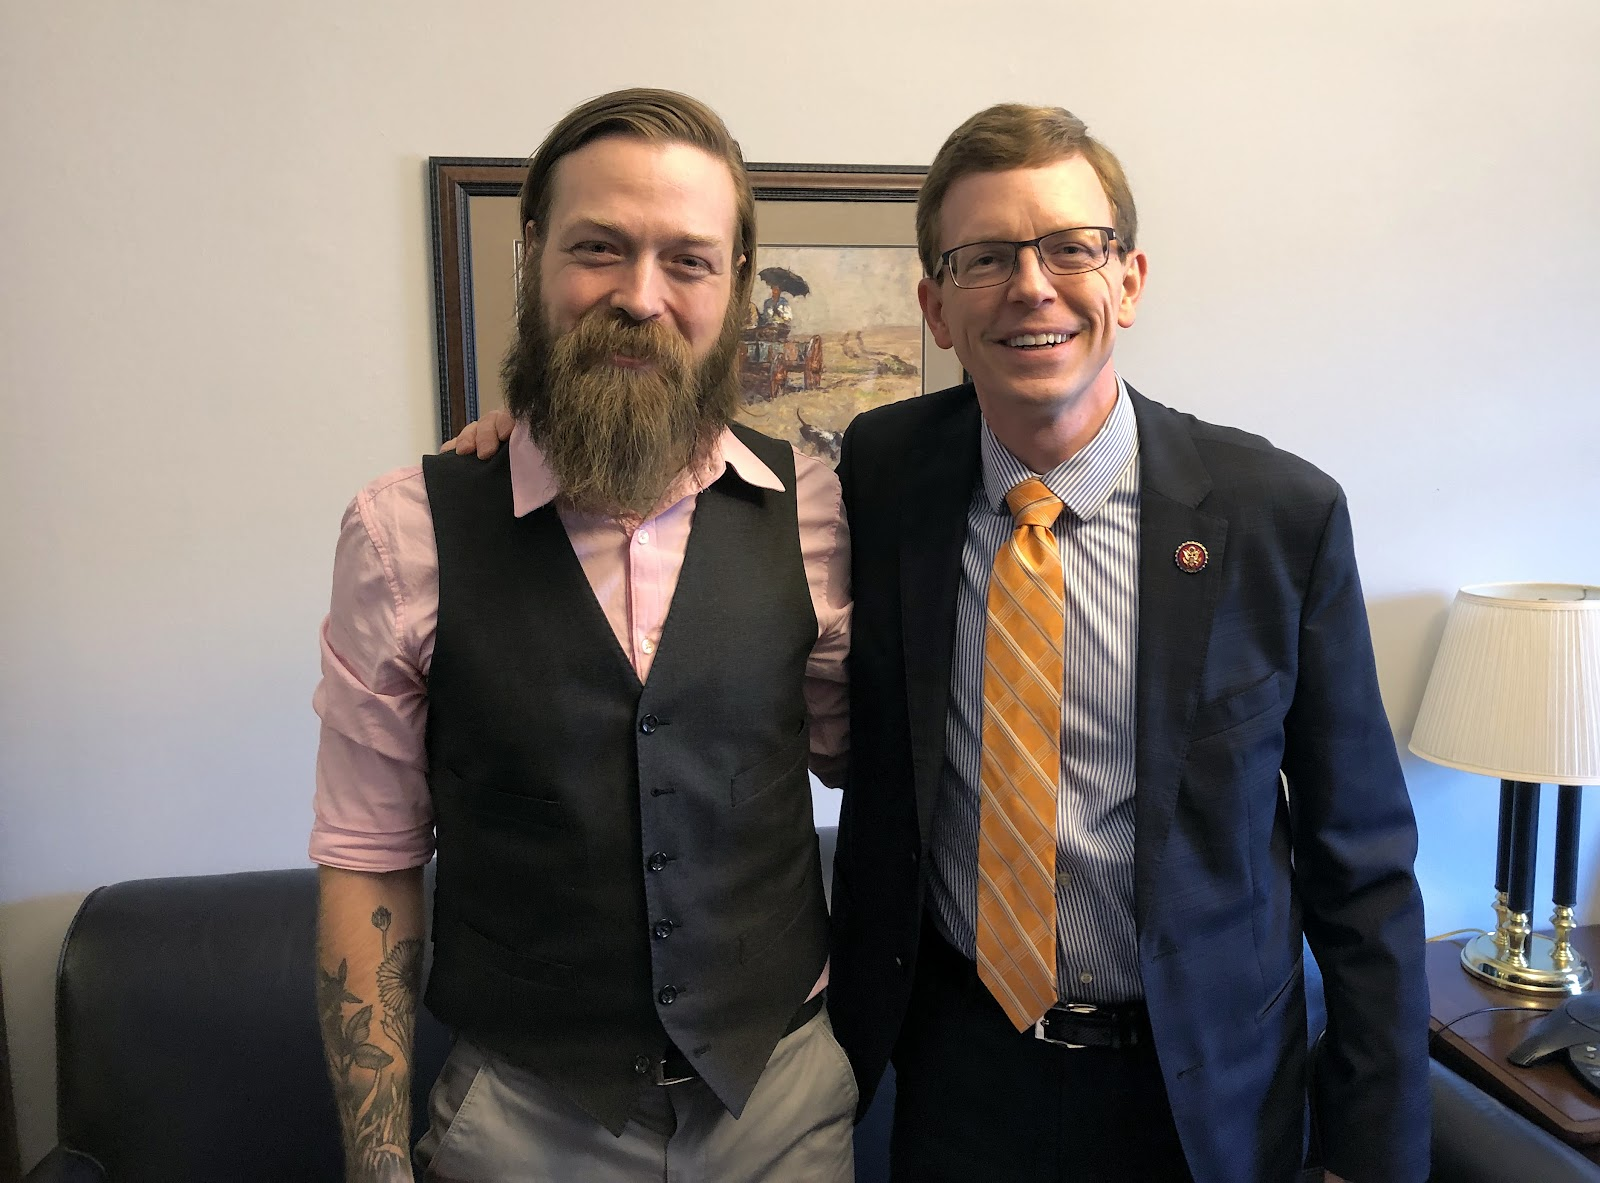 NSAC member Matt West from Dakota Rural Action with Representative Dusty Johnson (R-SD)